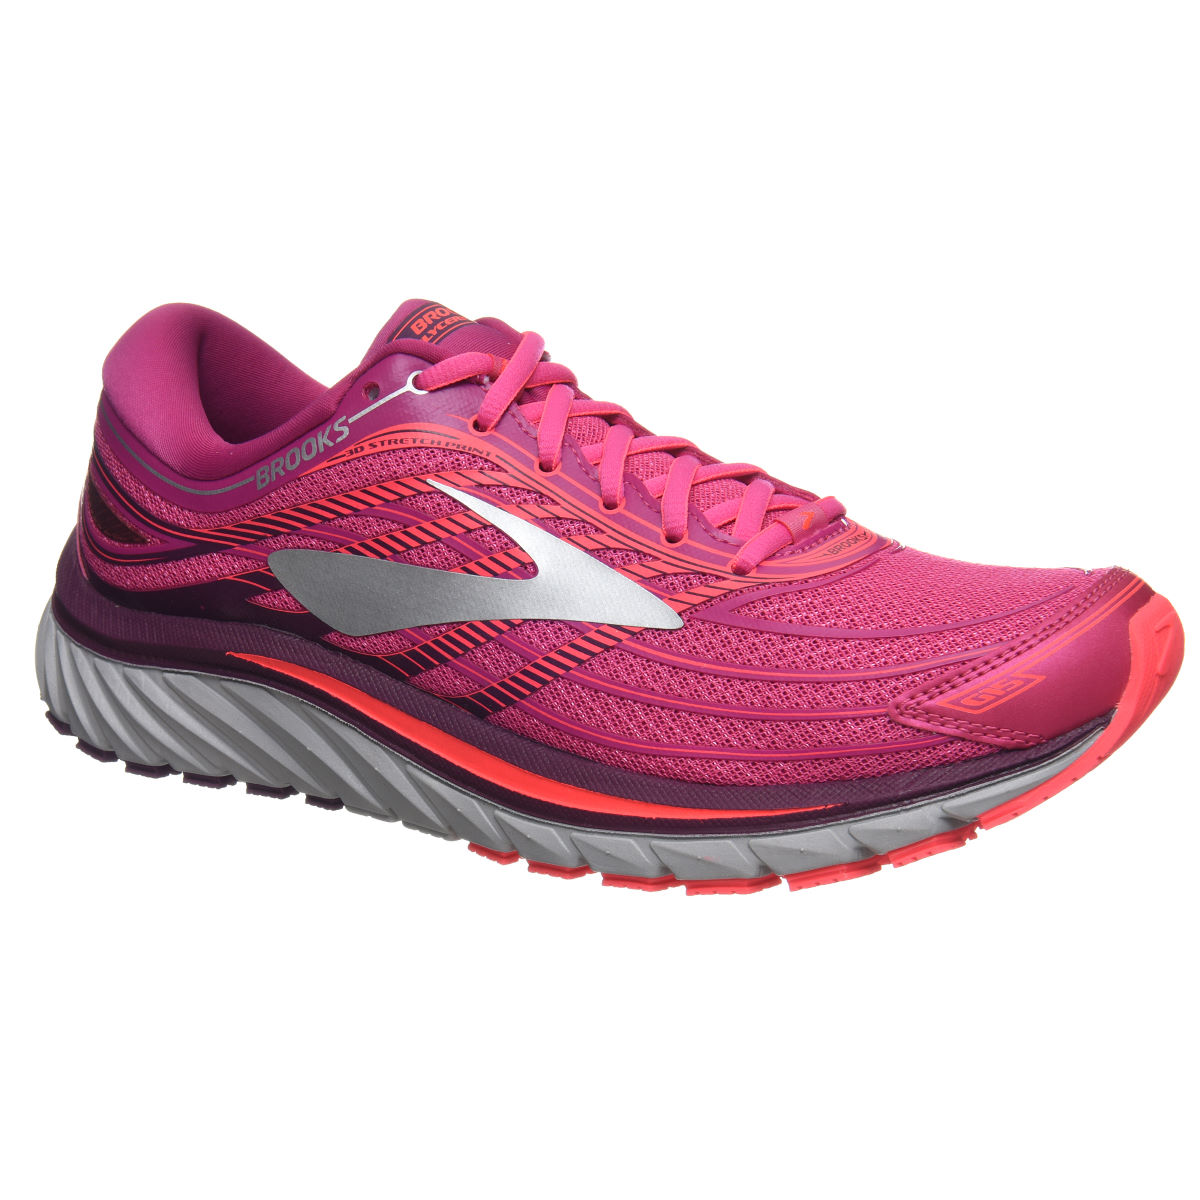 Chaussures Femme Brooks Glycerin 15 - UK 4 Pink/Silver